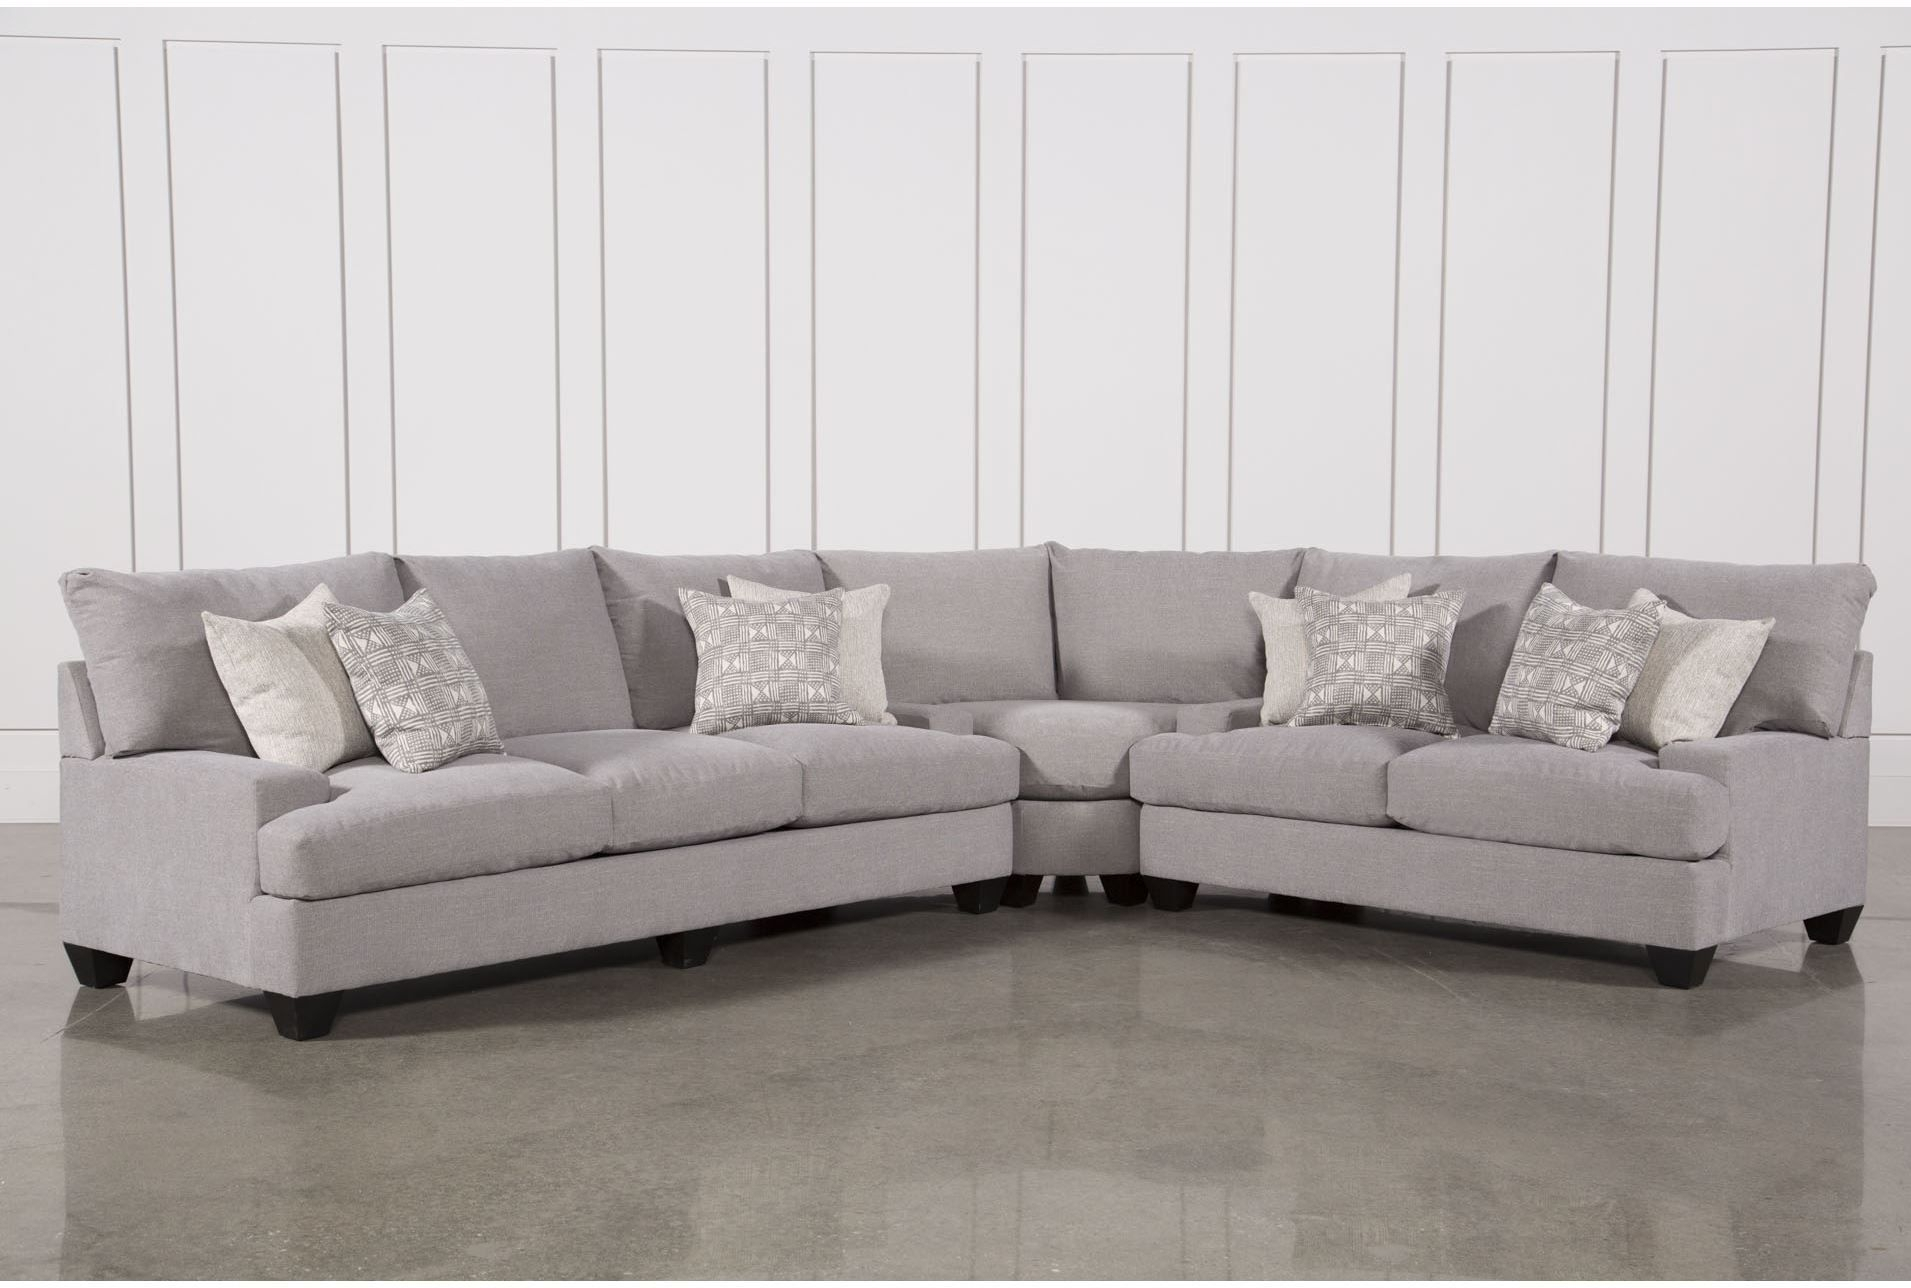 Harper Down 3 Piece Sectional | Family Room [Rekhi] | Pinterest regarding Adeline 3 Piece Sectionals (Image 14 of 30)